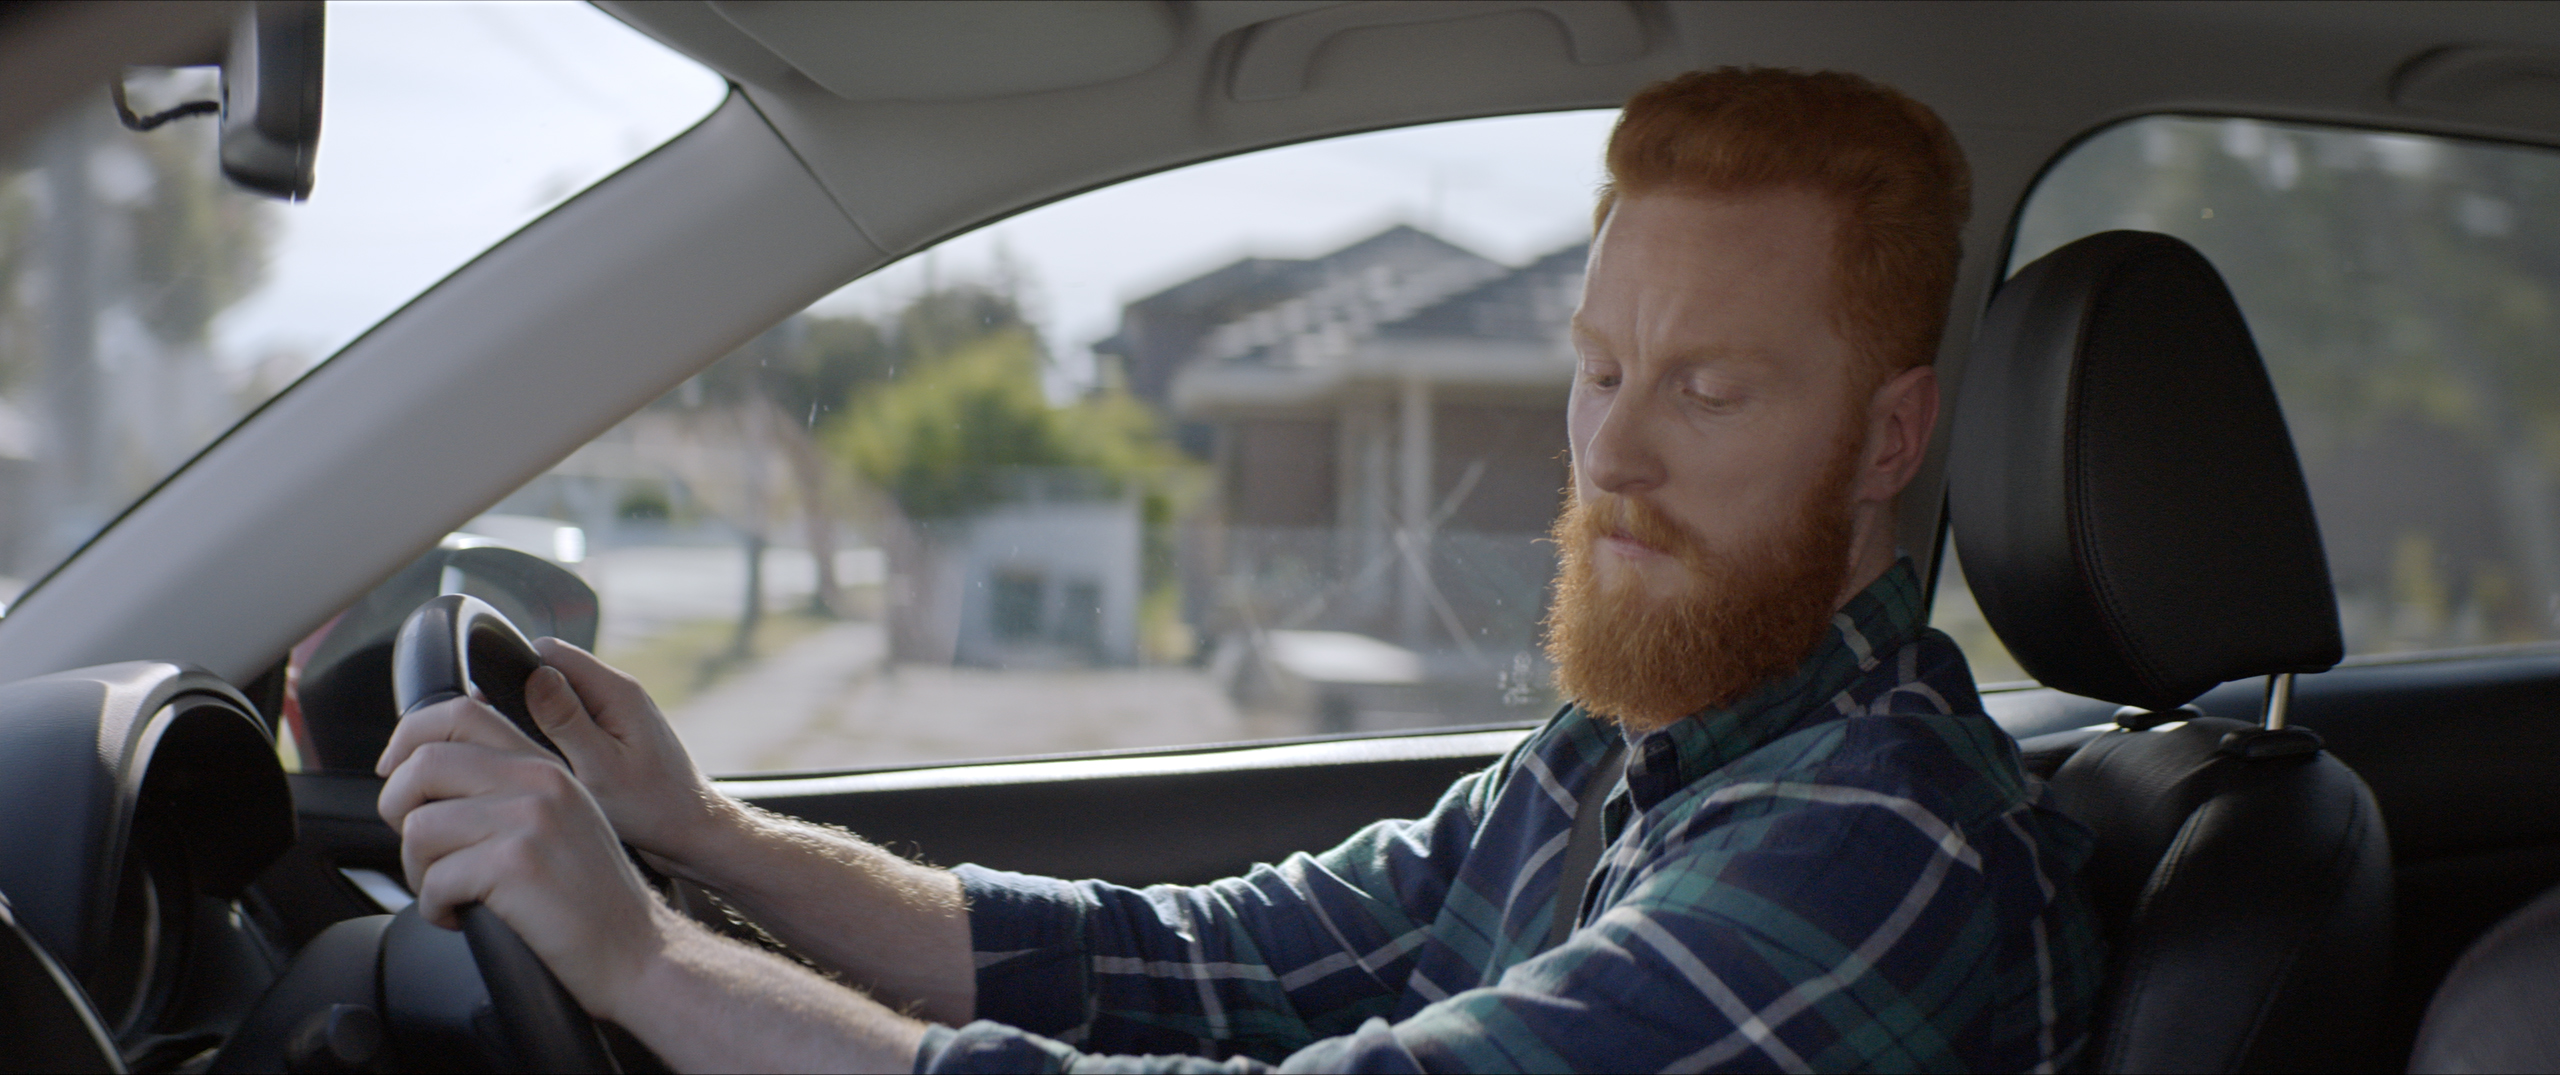 New campaign highlights the dangers of distracted driving